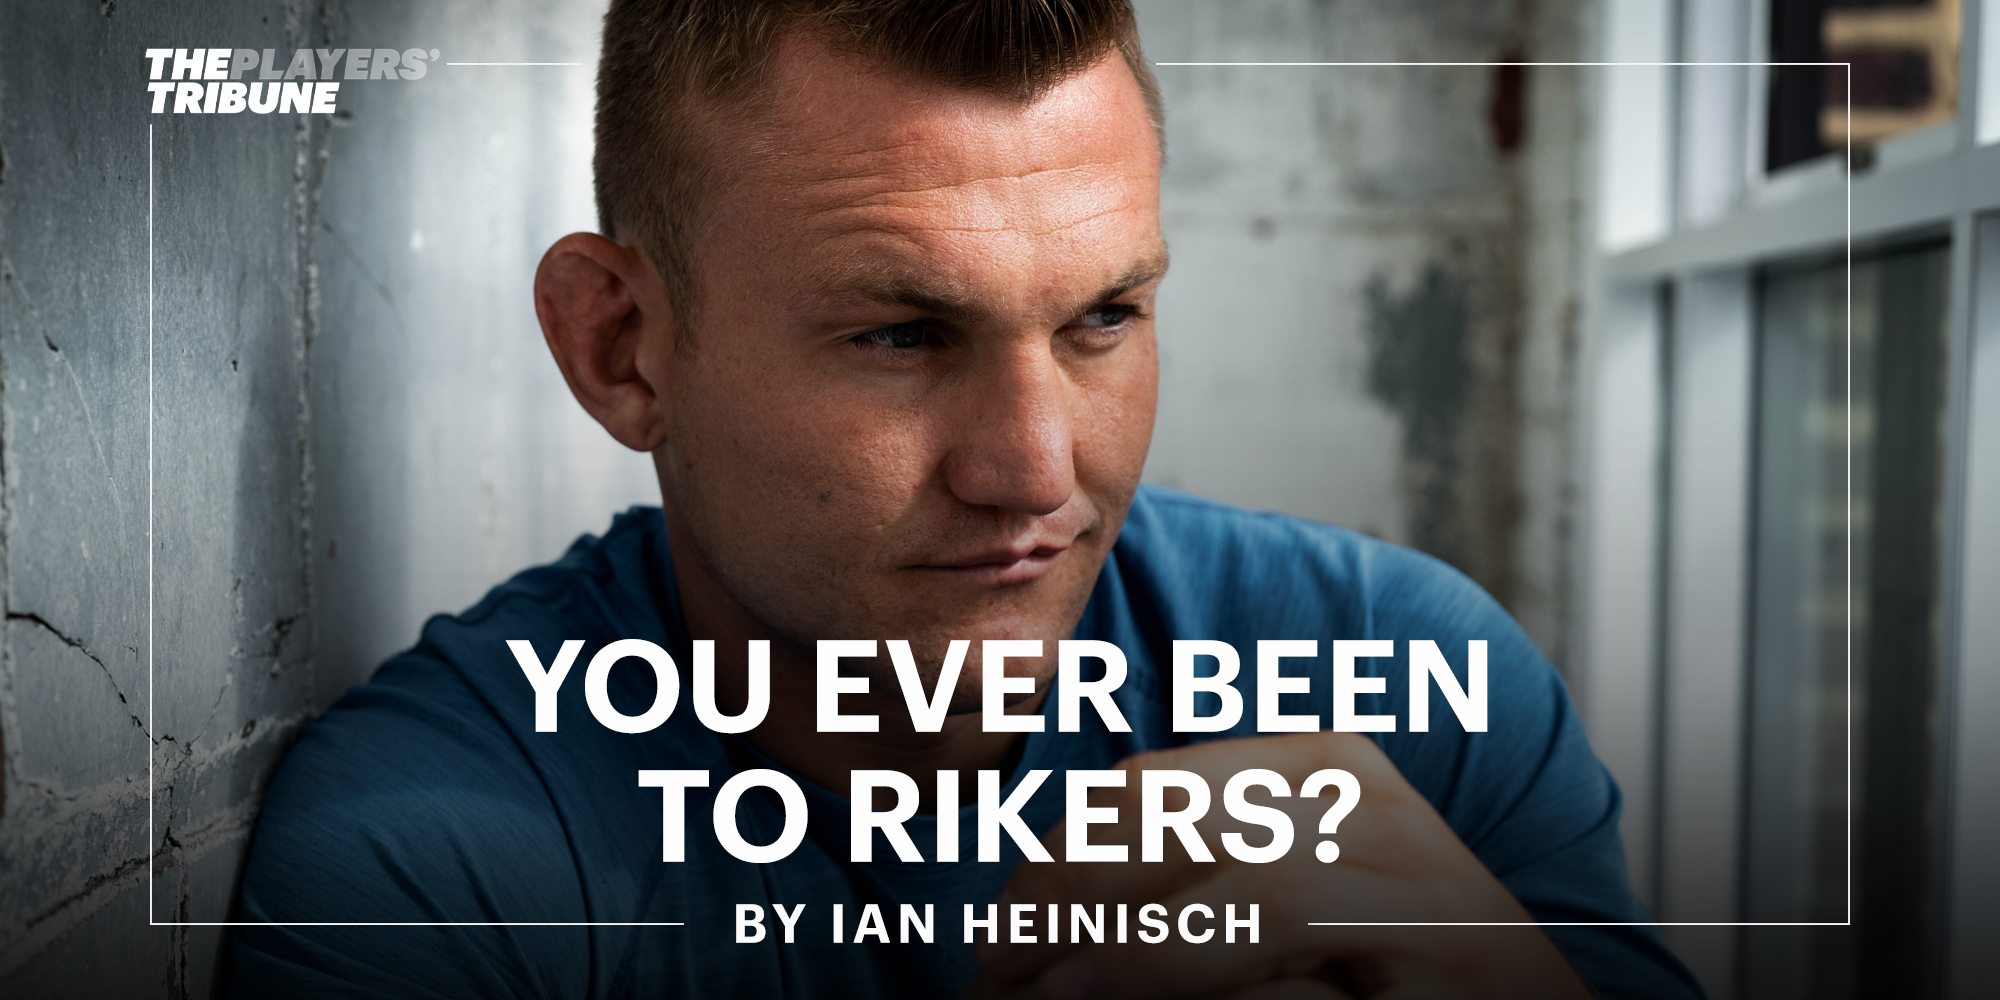 You Ever Been to Rikers?